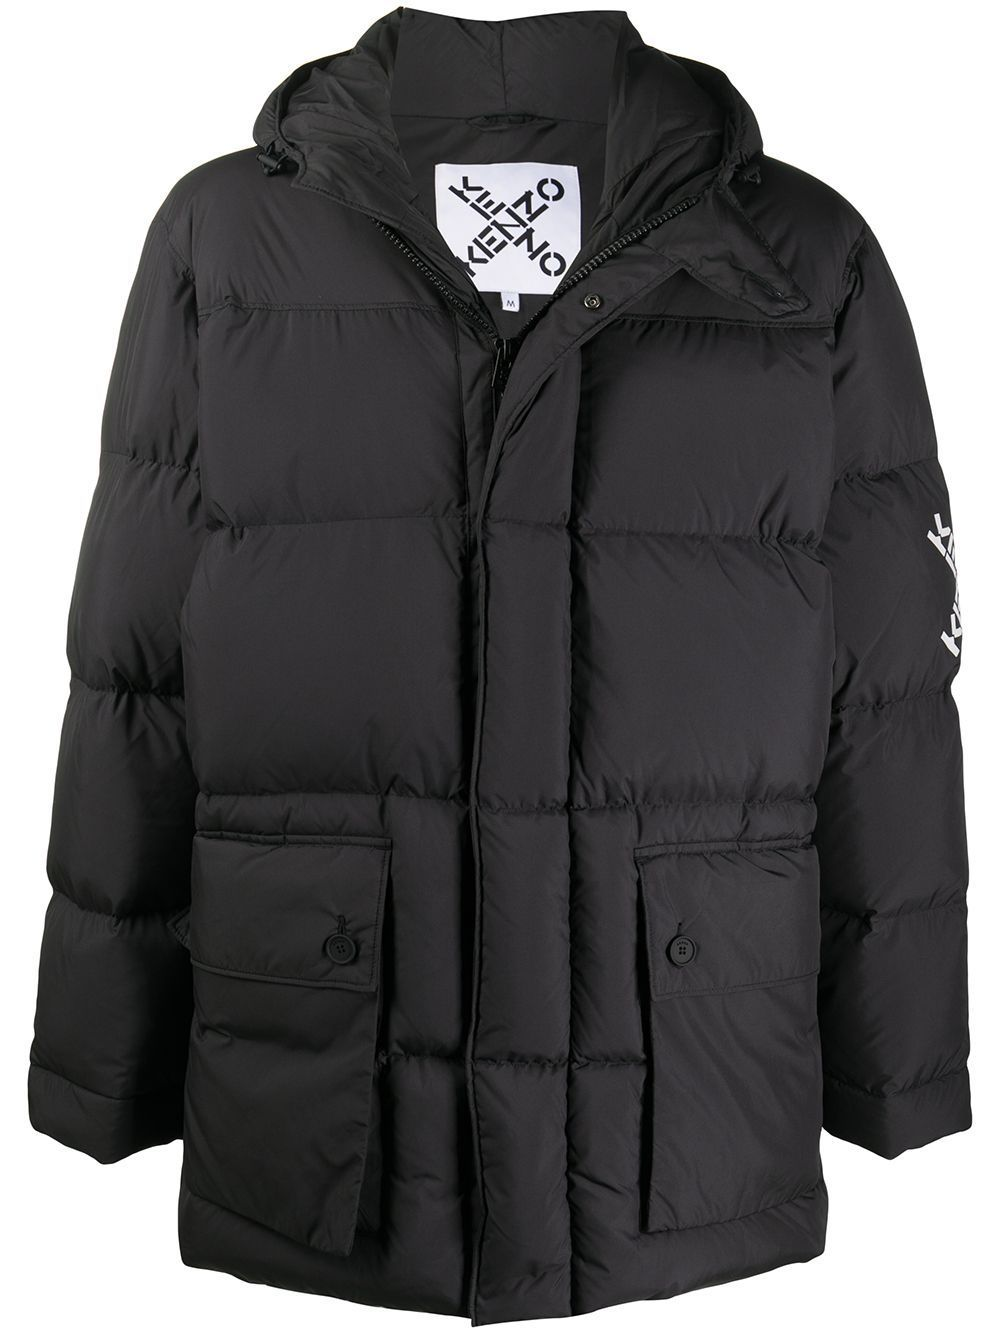 KENZO Logo Cross Parka Padded Coat Black